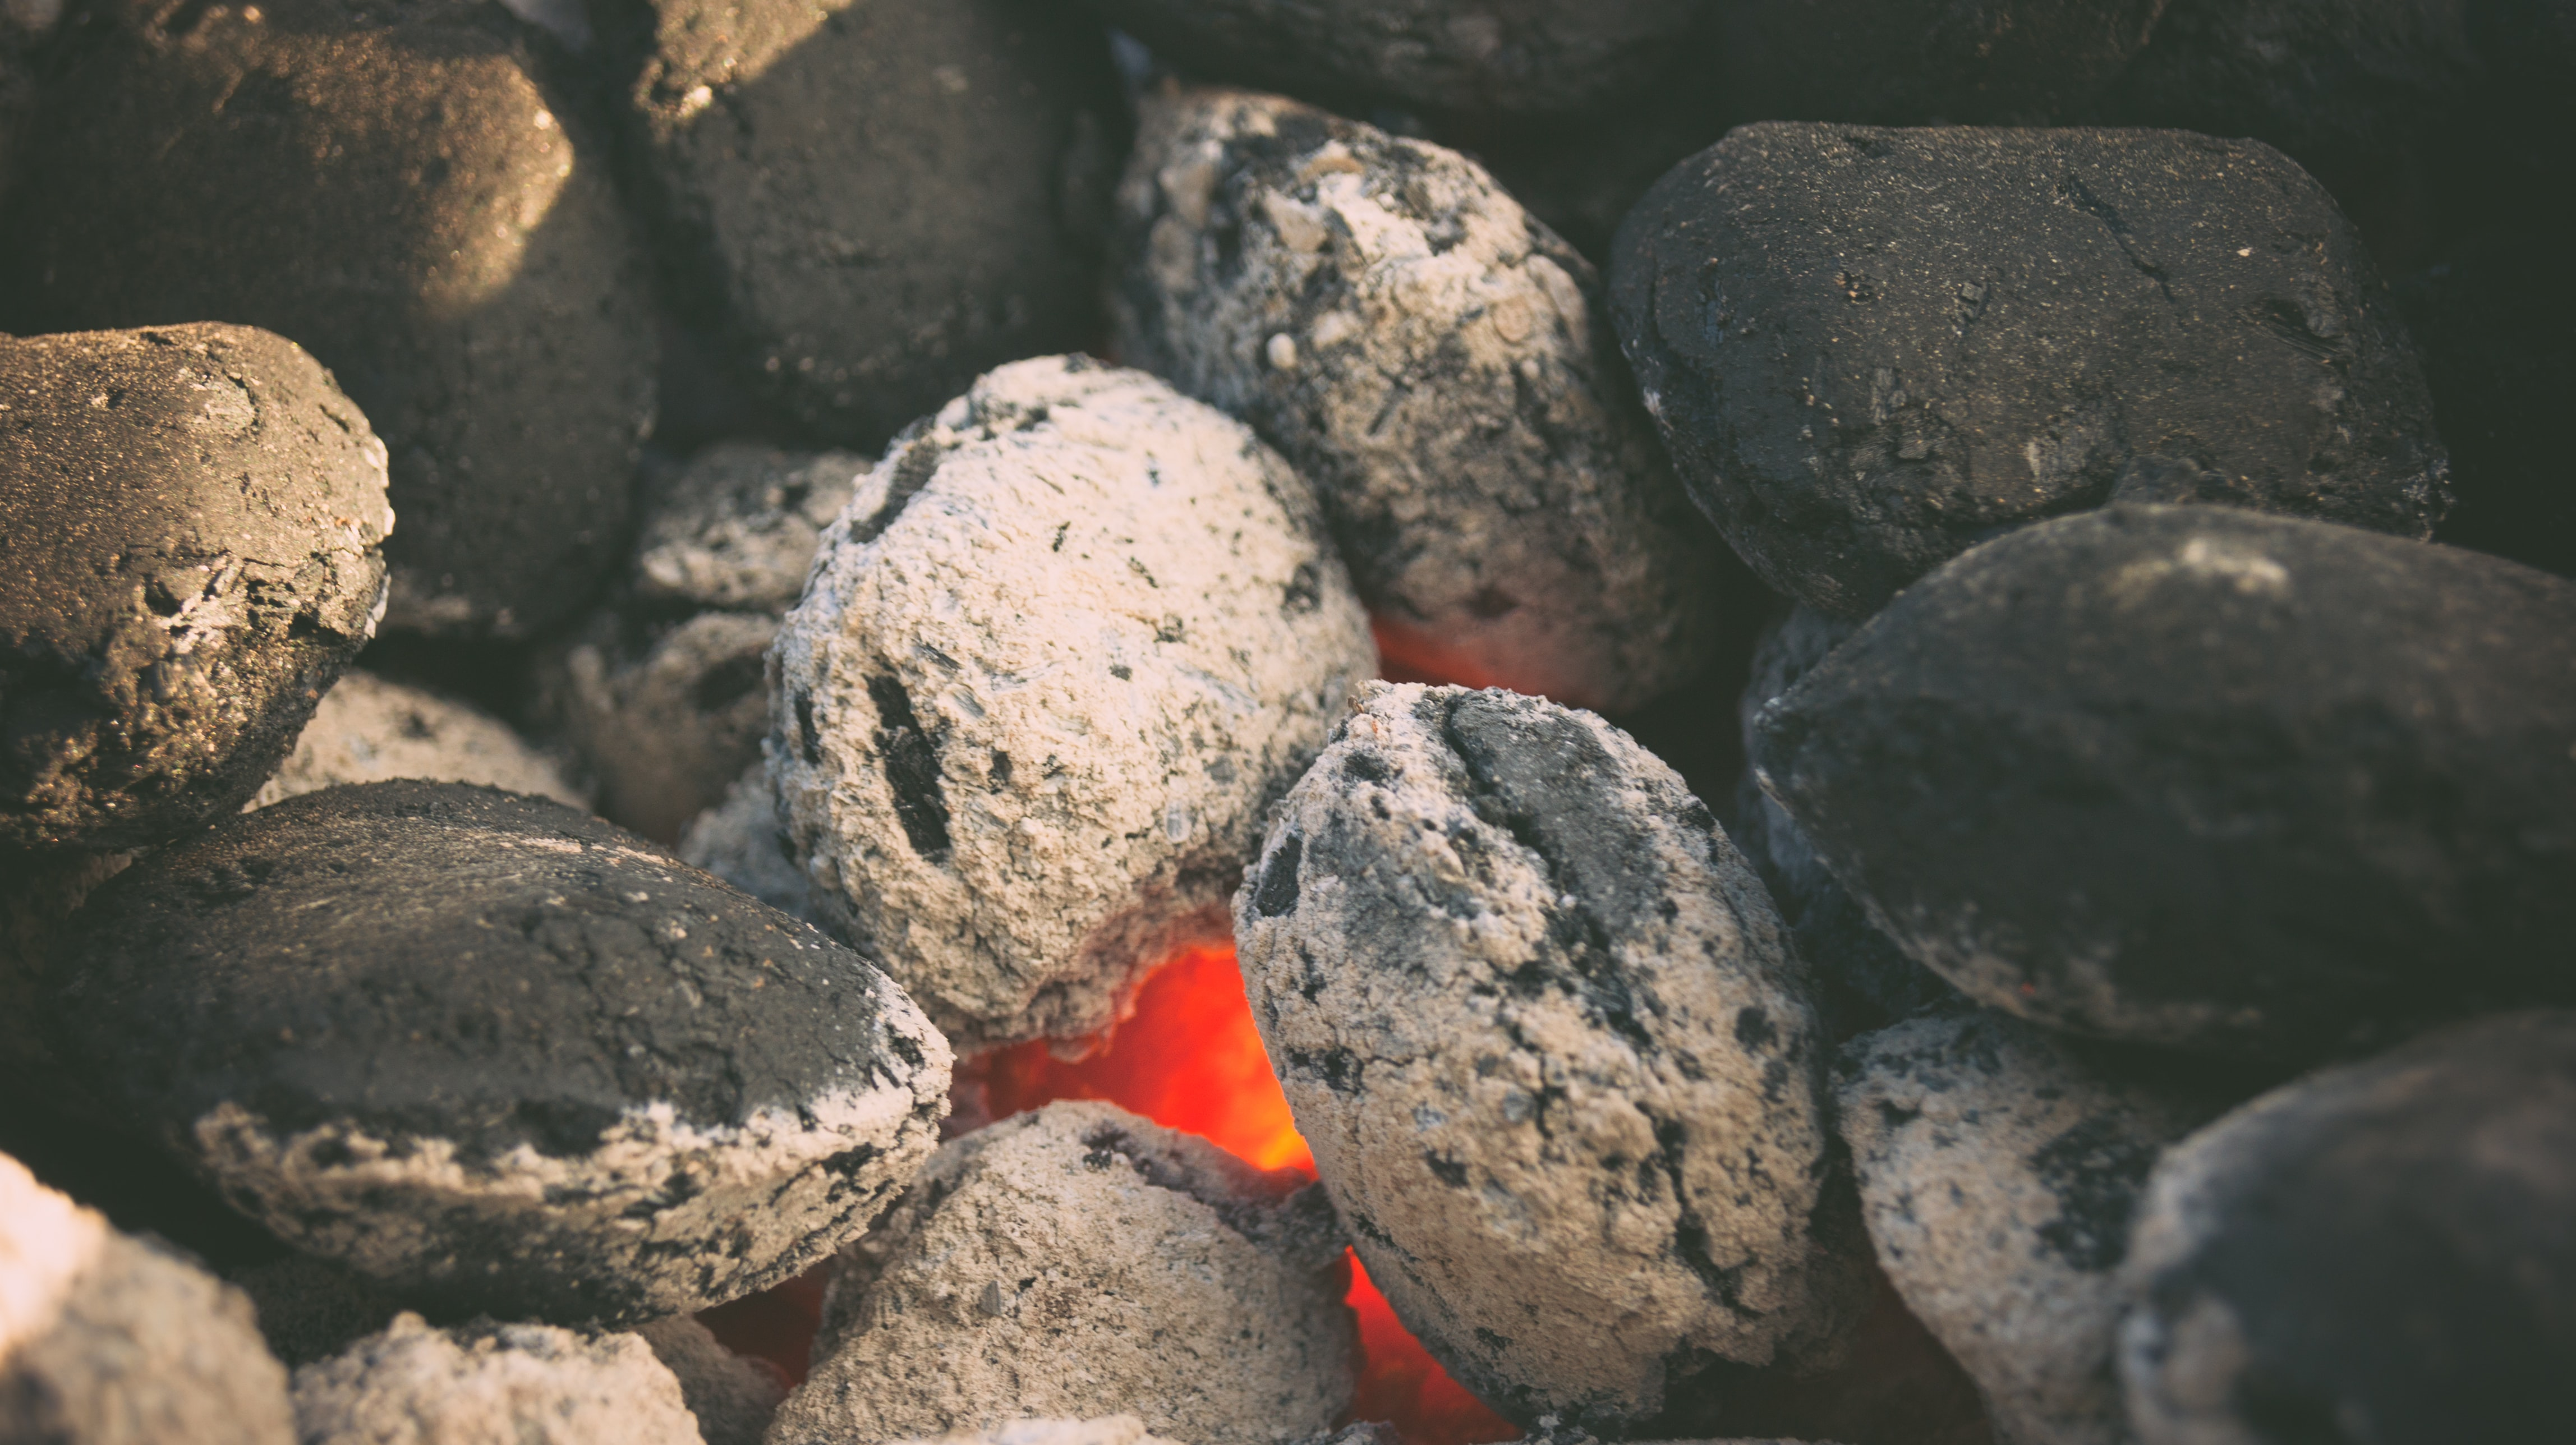 Feasibility Study and Design of a Briquette Manufacturing Plant